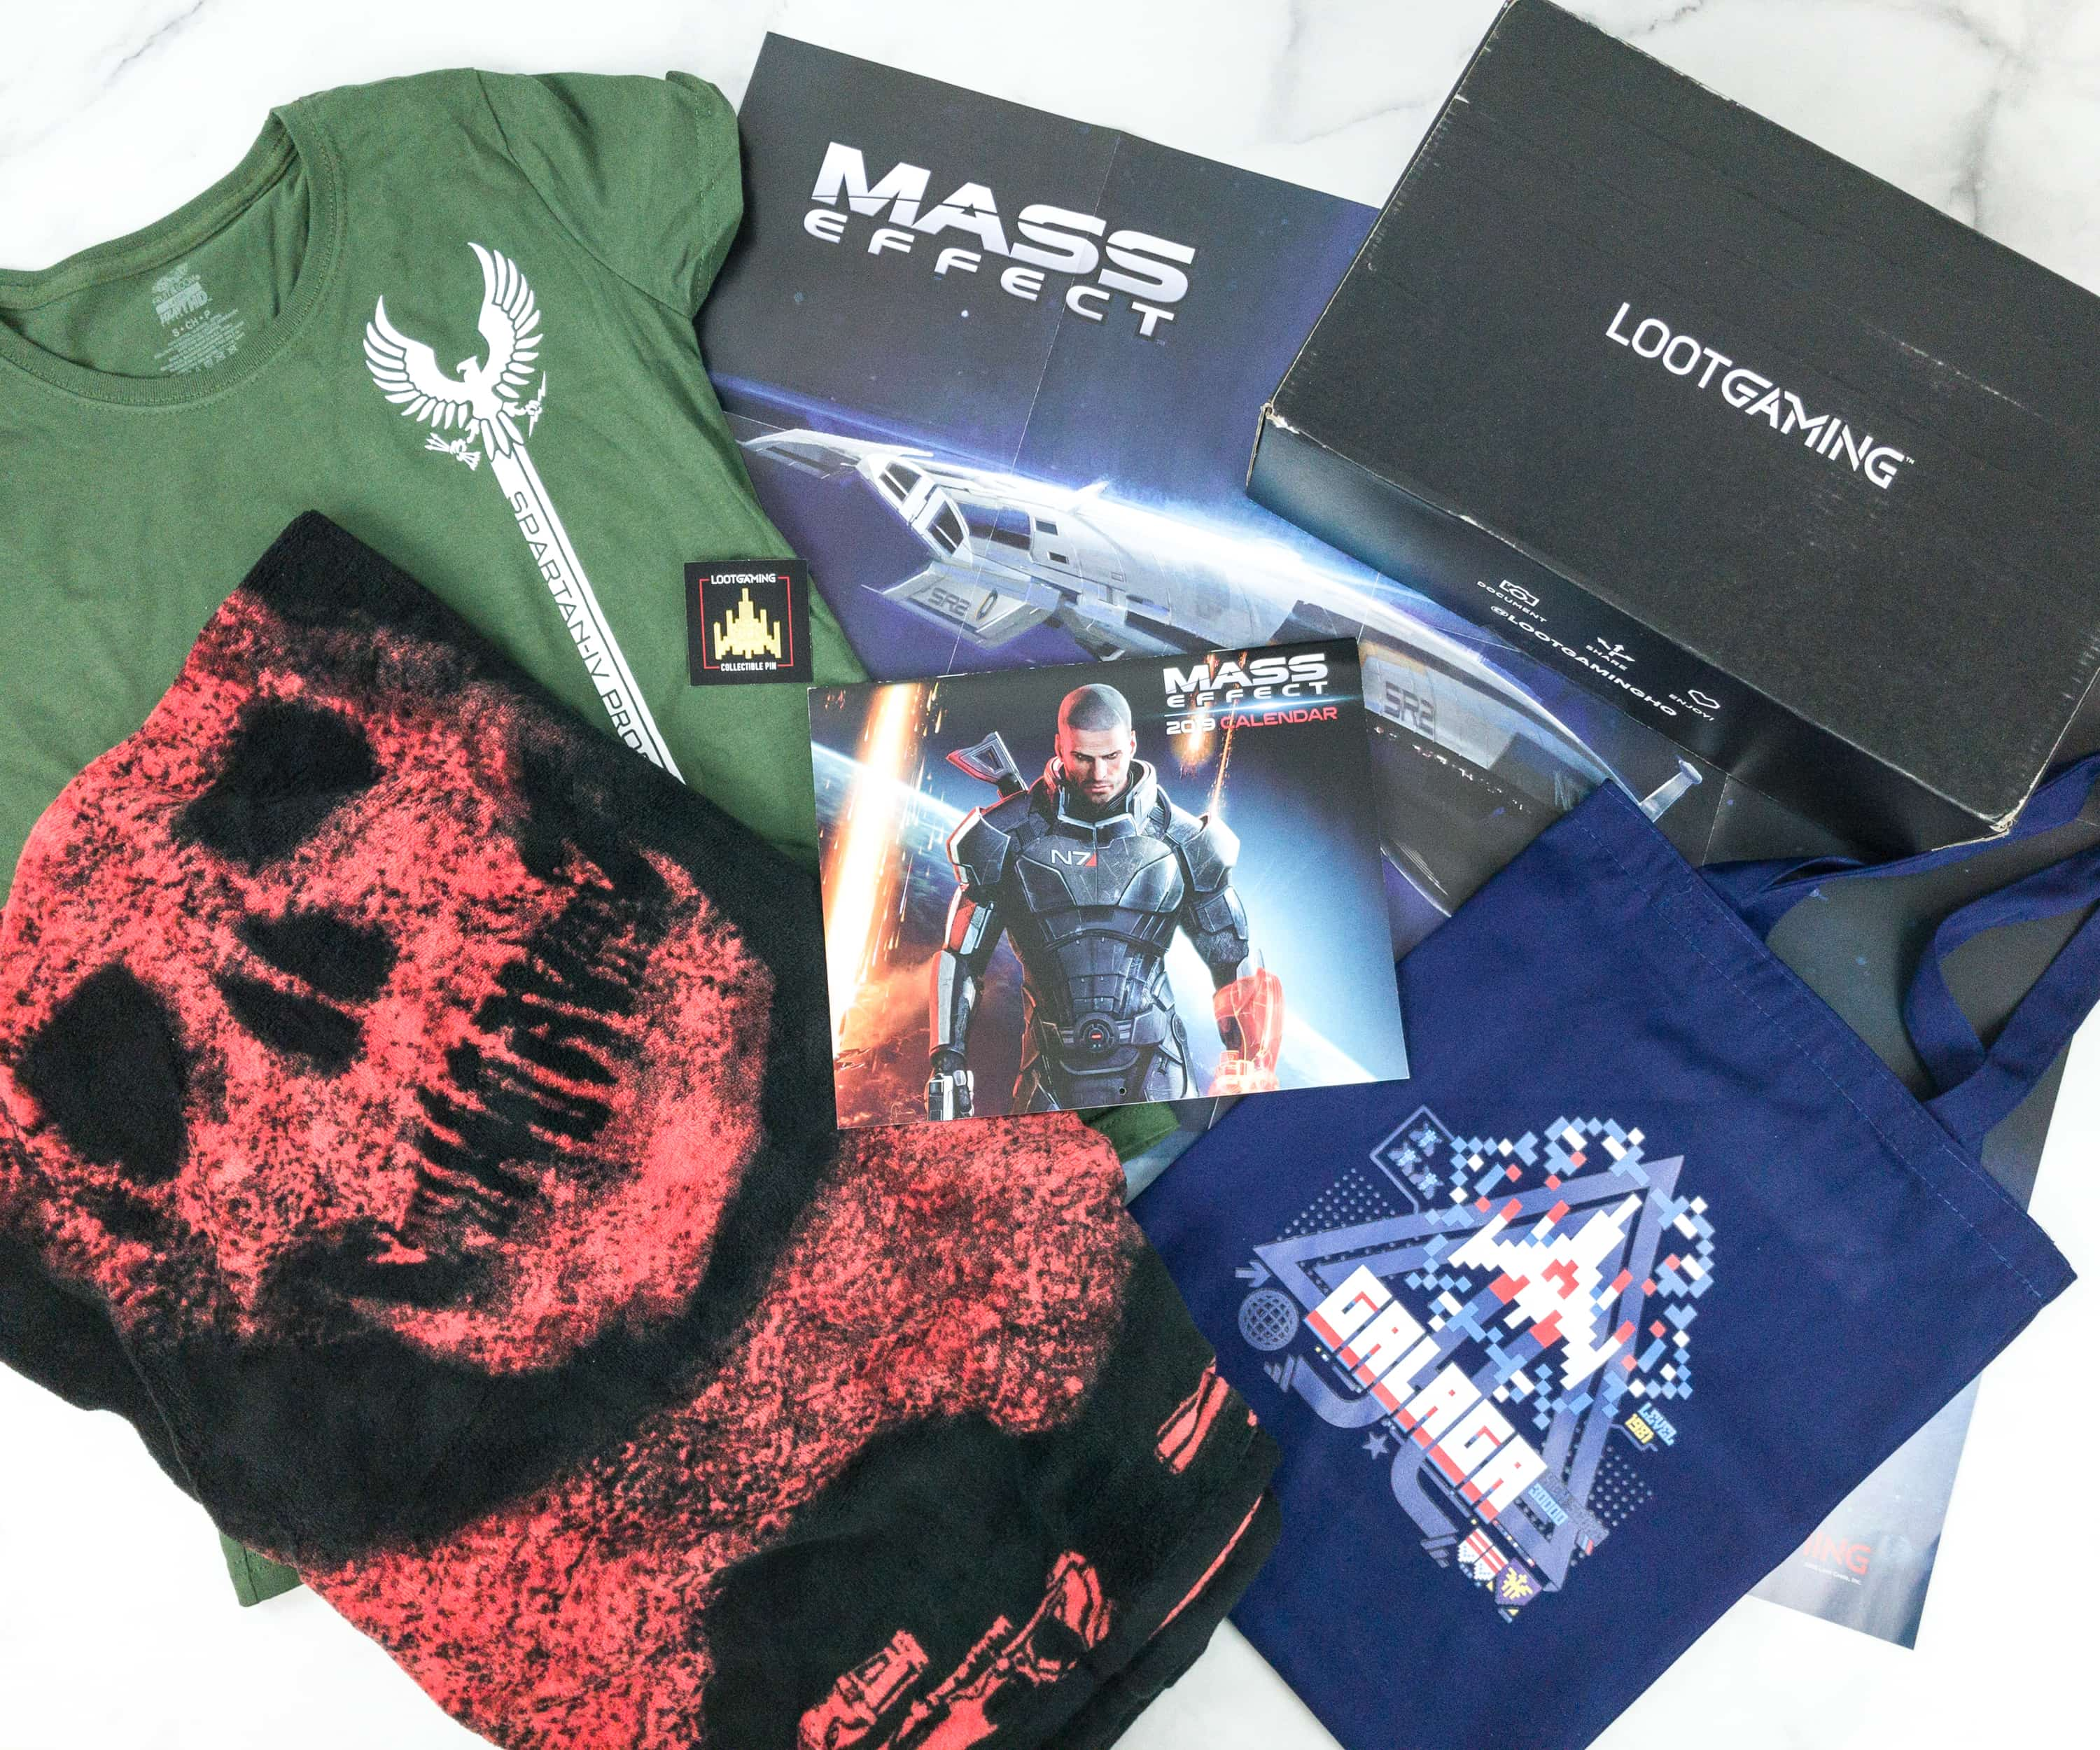 Loot Gaming December 2018 Subscription Box Review & Coupon